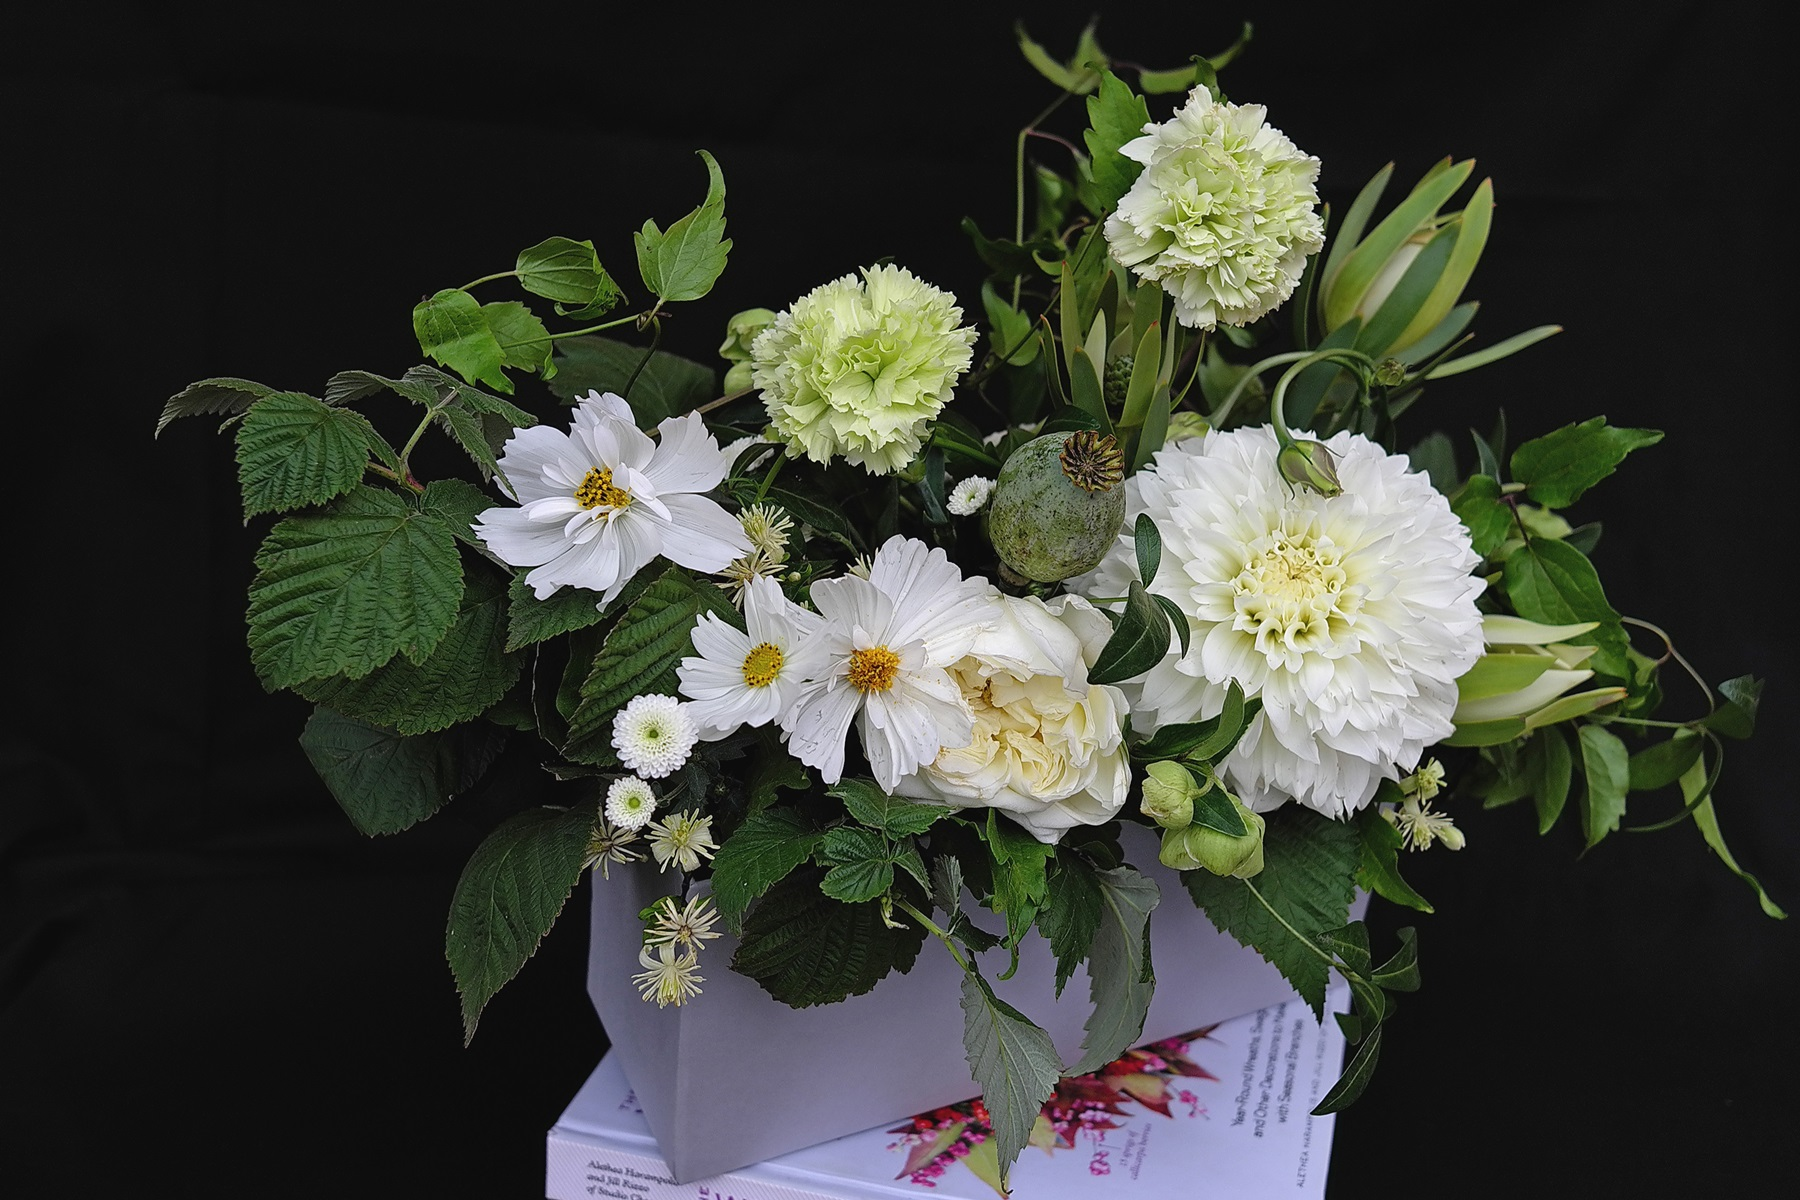 Flower arrangement, flower box of the most beautiful garden flowers: gleoborus, chrysanthemum, kosmeja, furry garden rose and wild clematis.